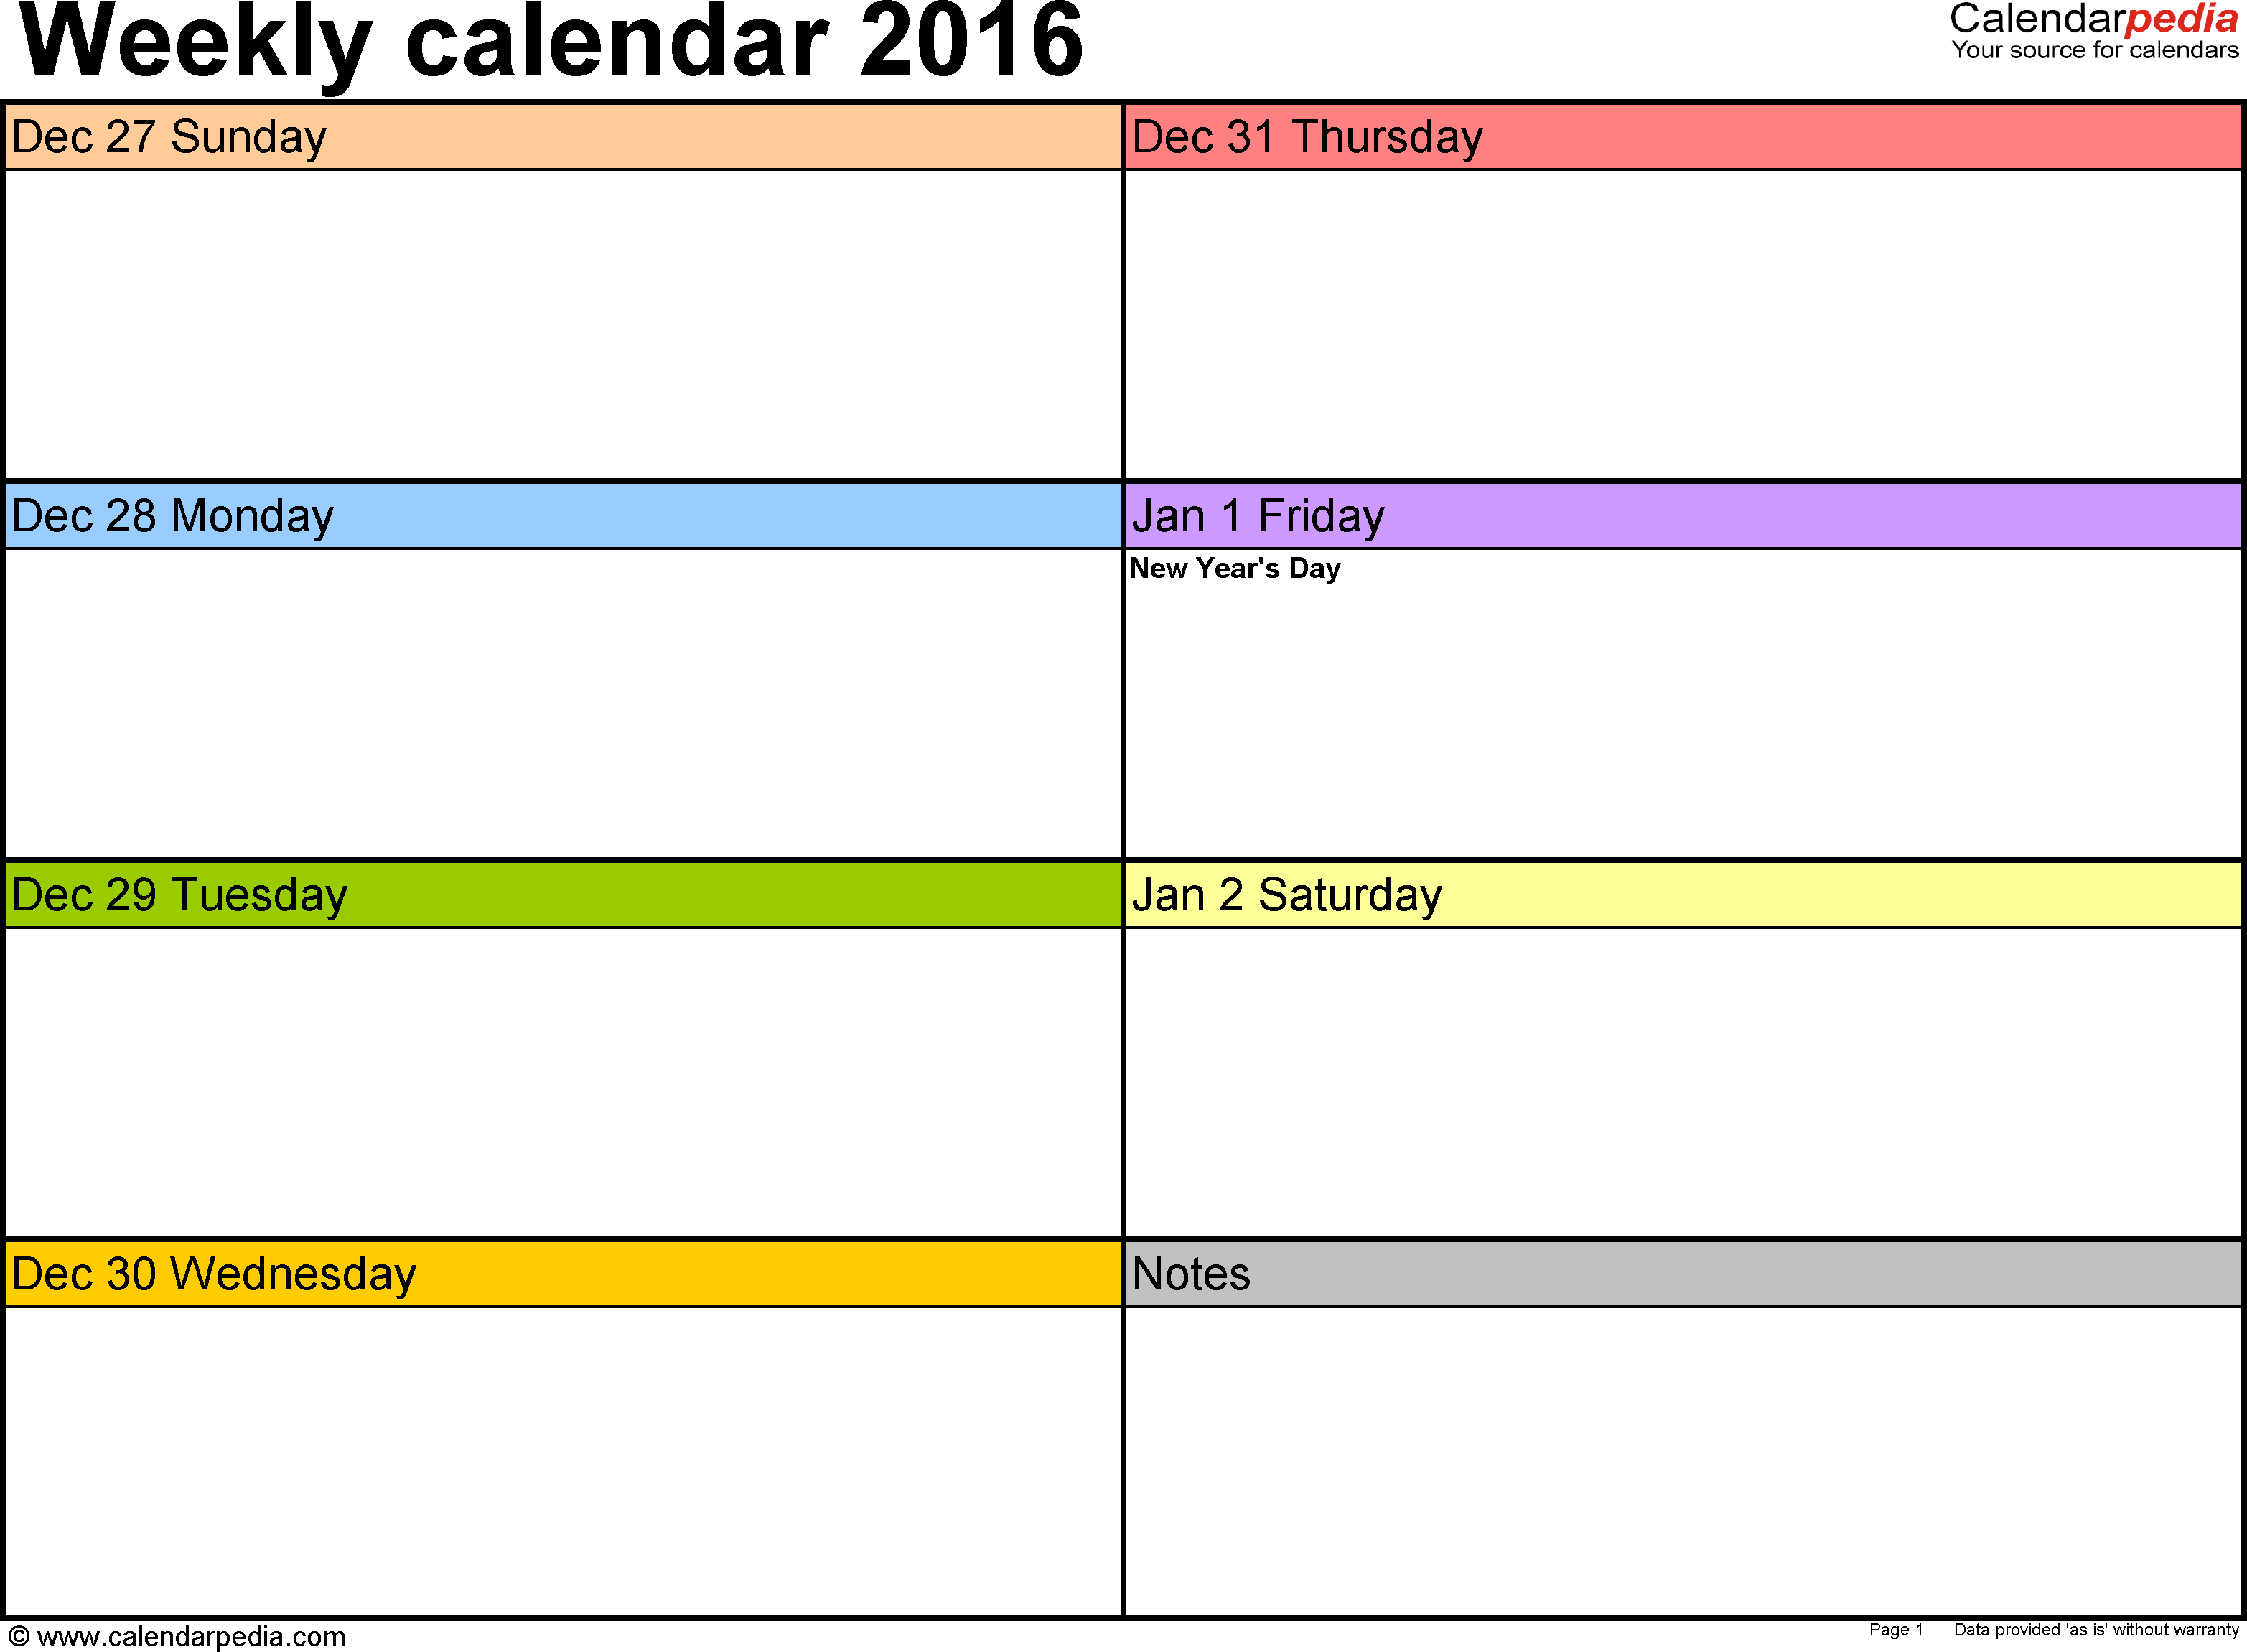 weekly calendar 2016 template for pdf version 6 landscape 53 pages in